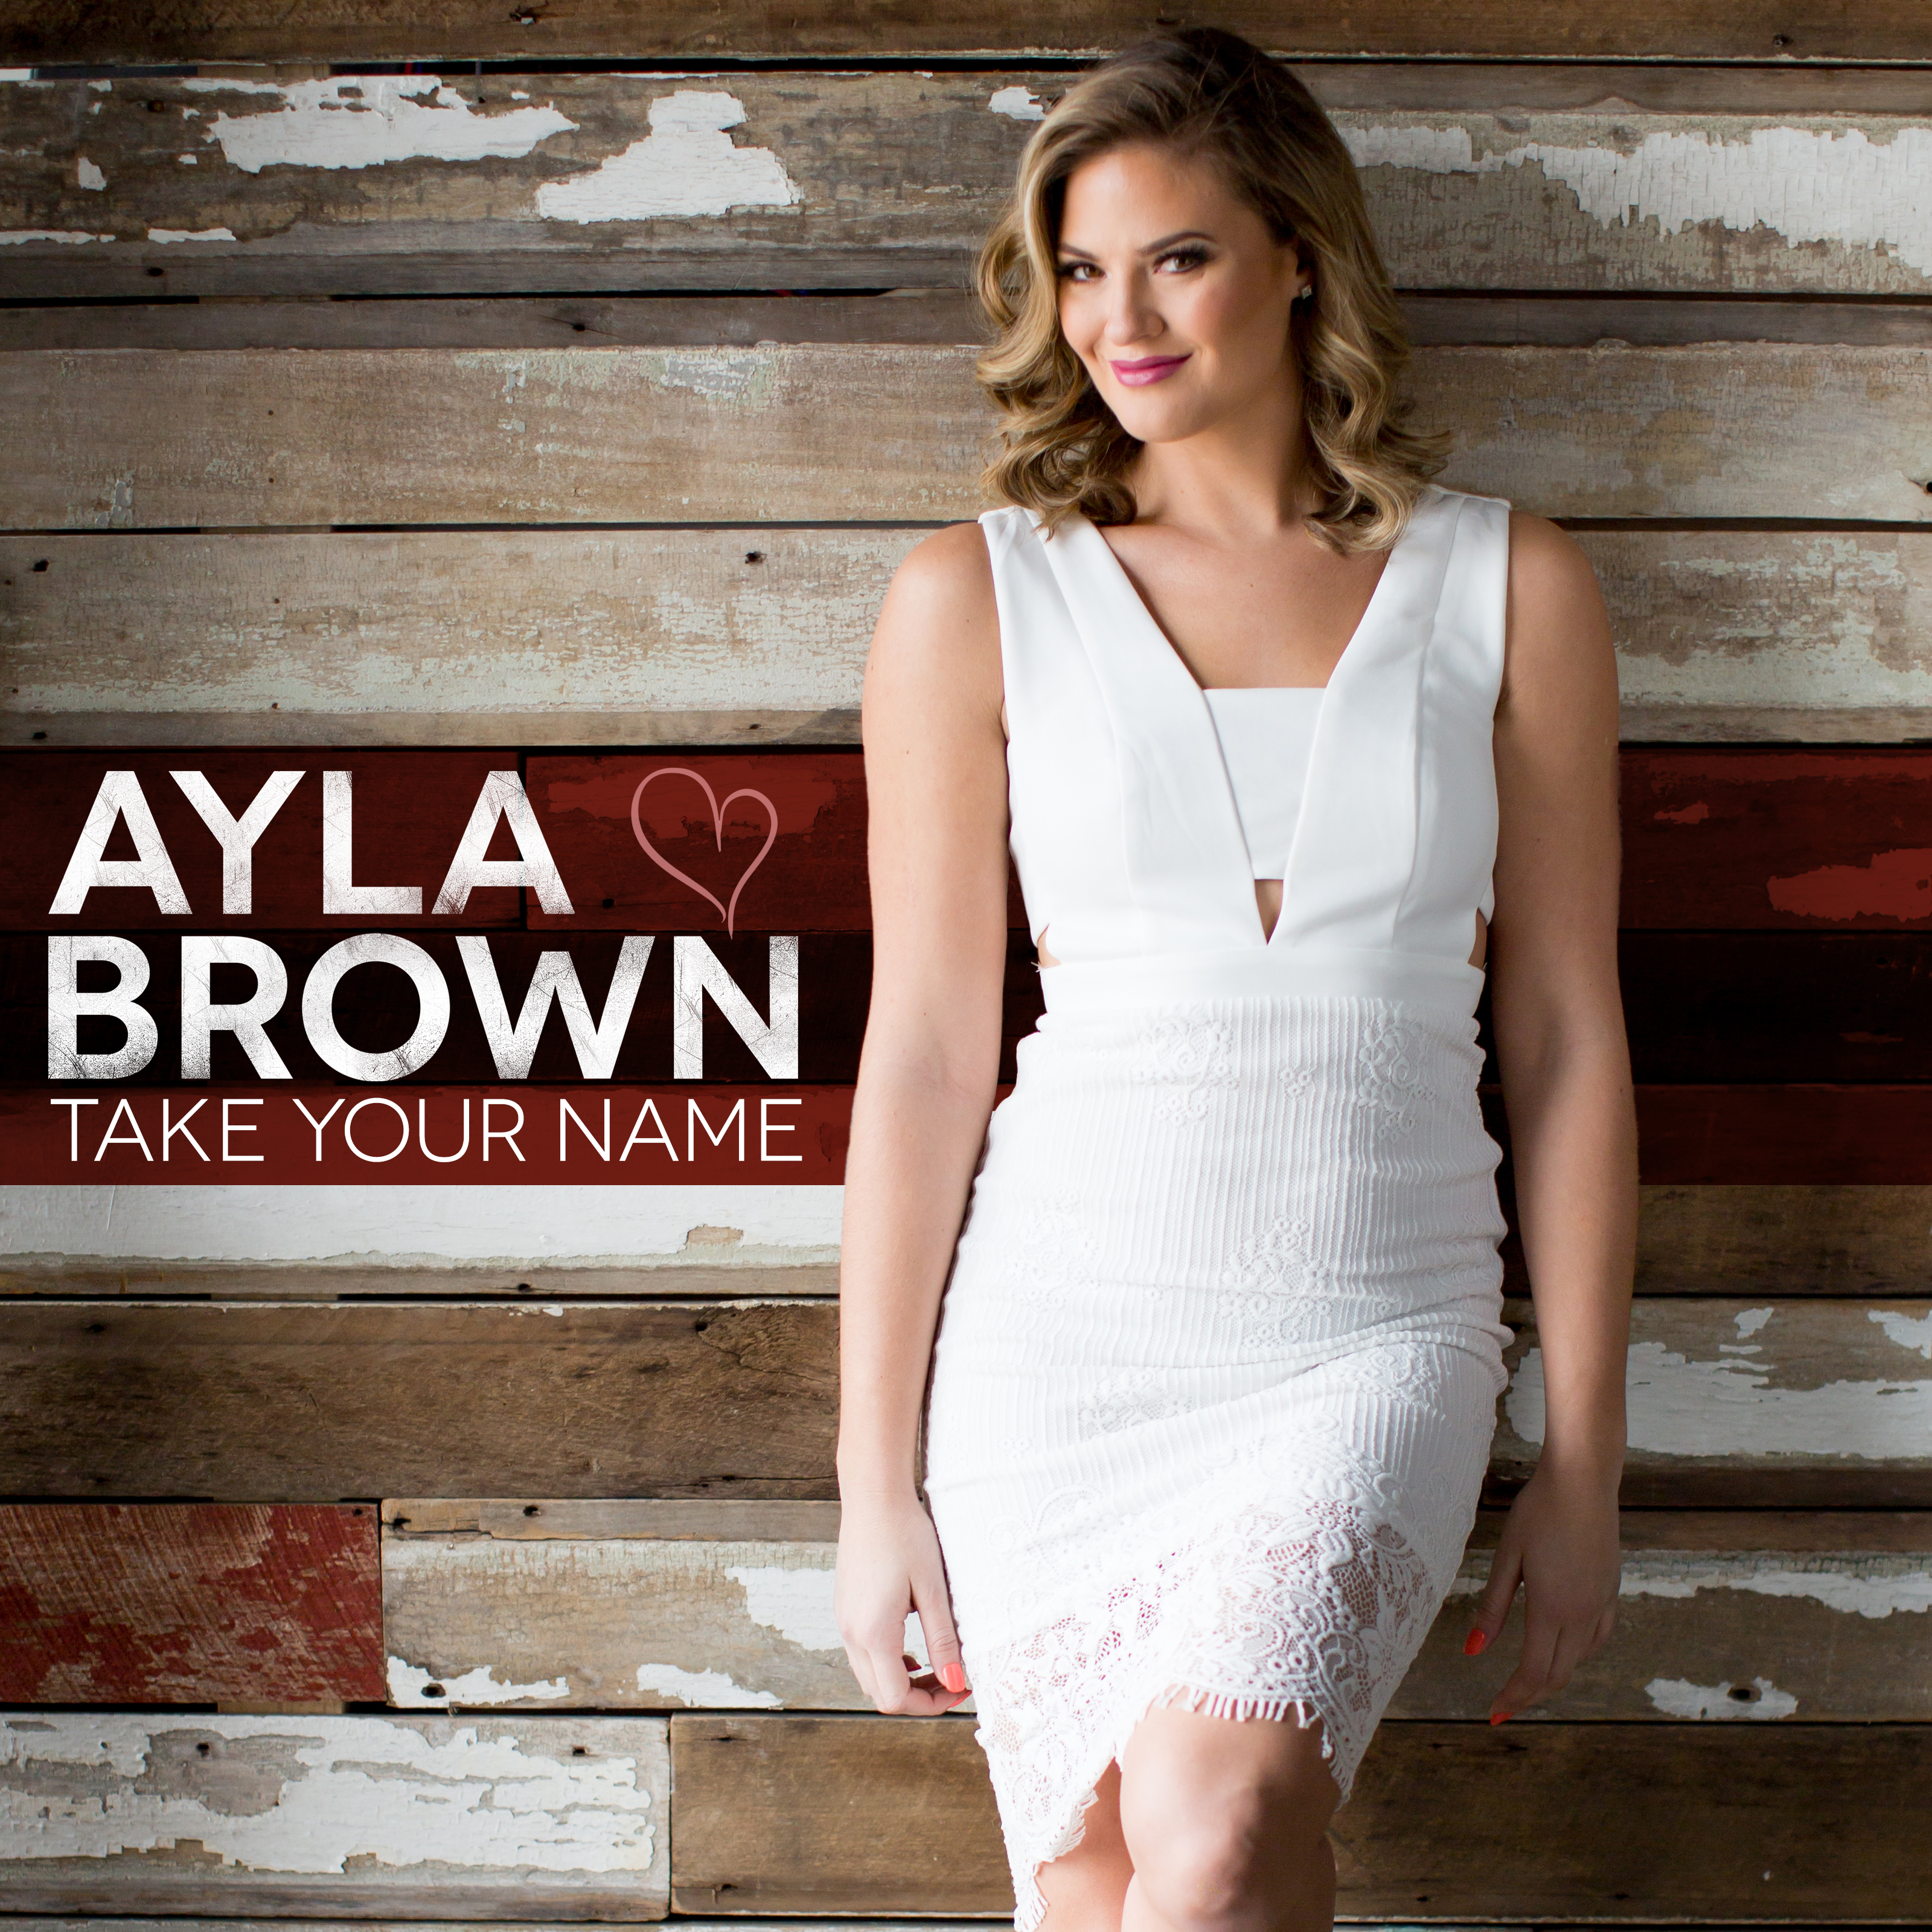 AylaBrown com | The Official Site — The Official Website of Ayla Brown